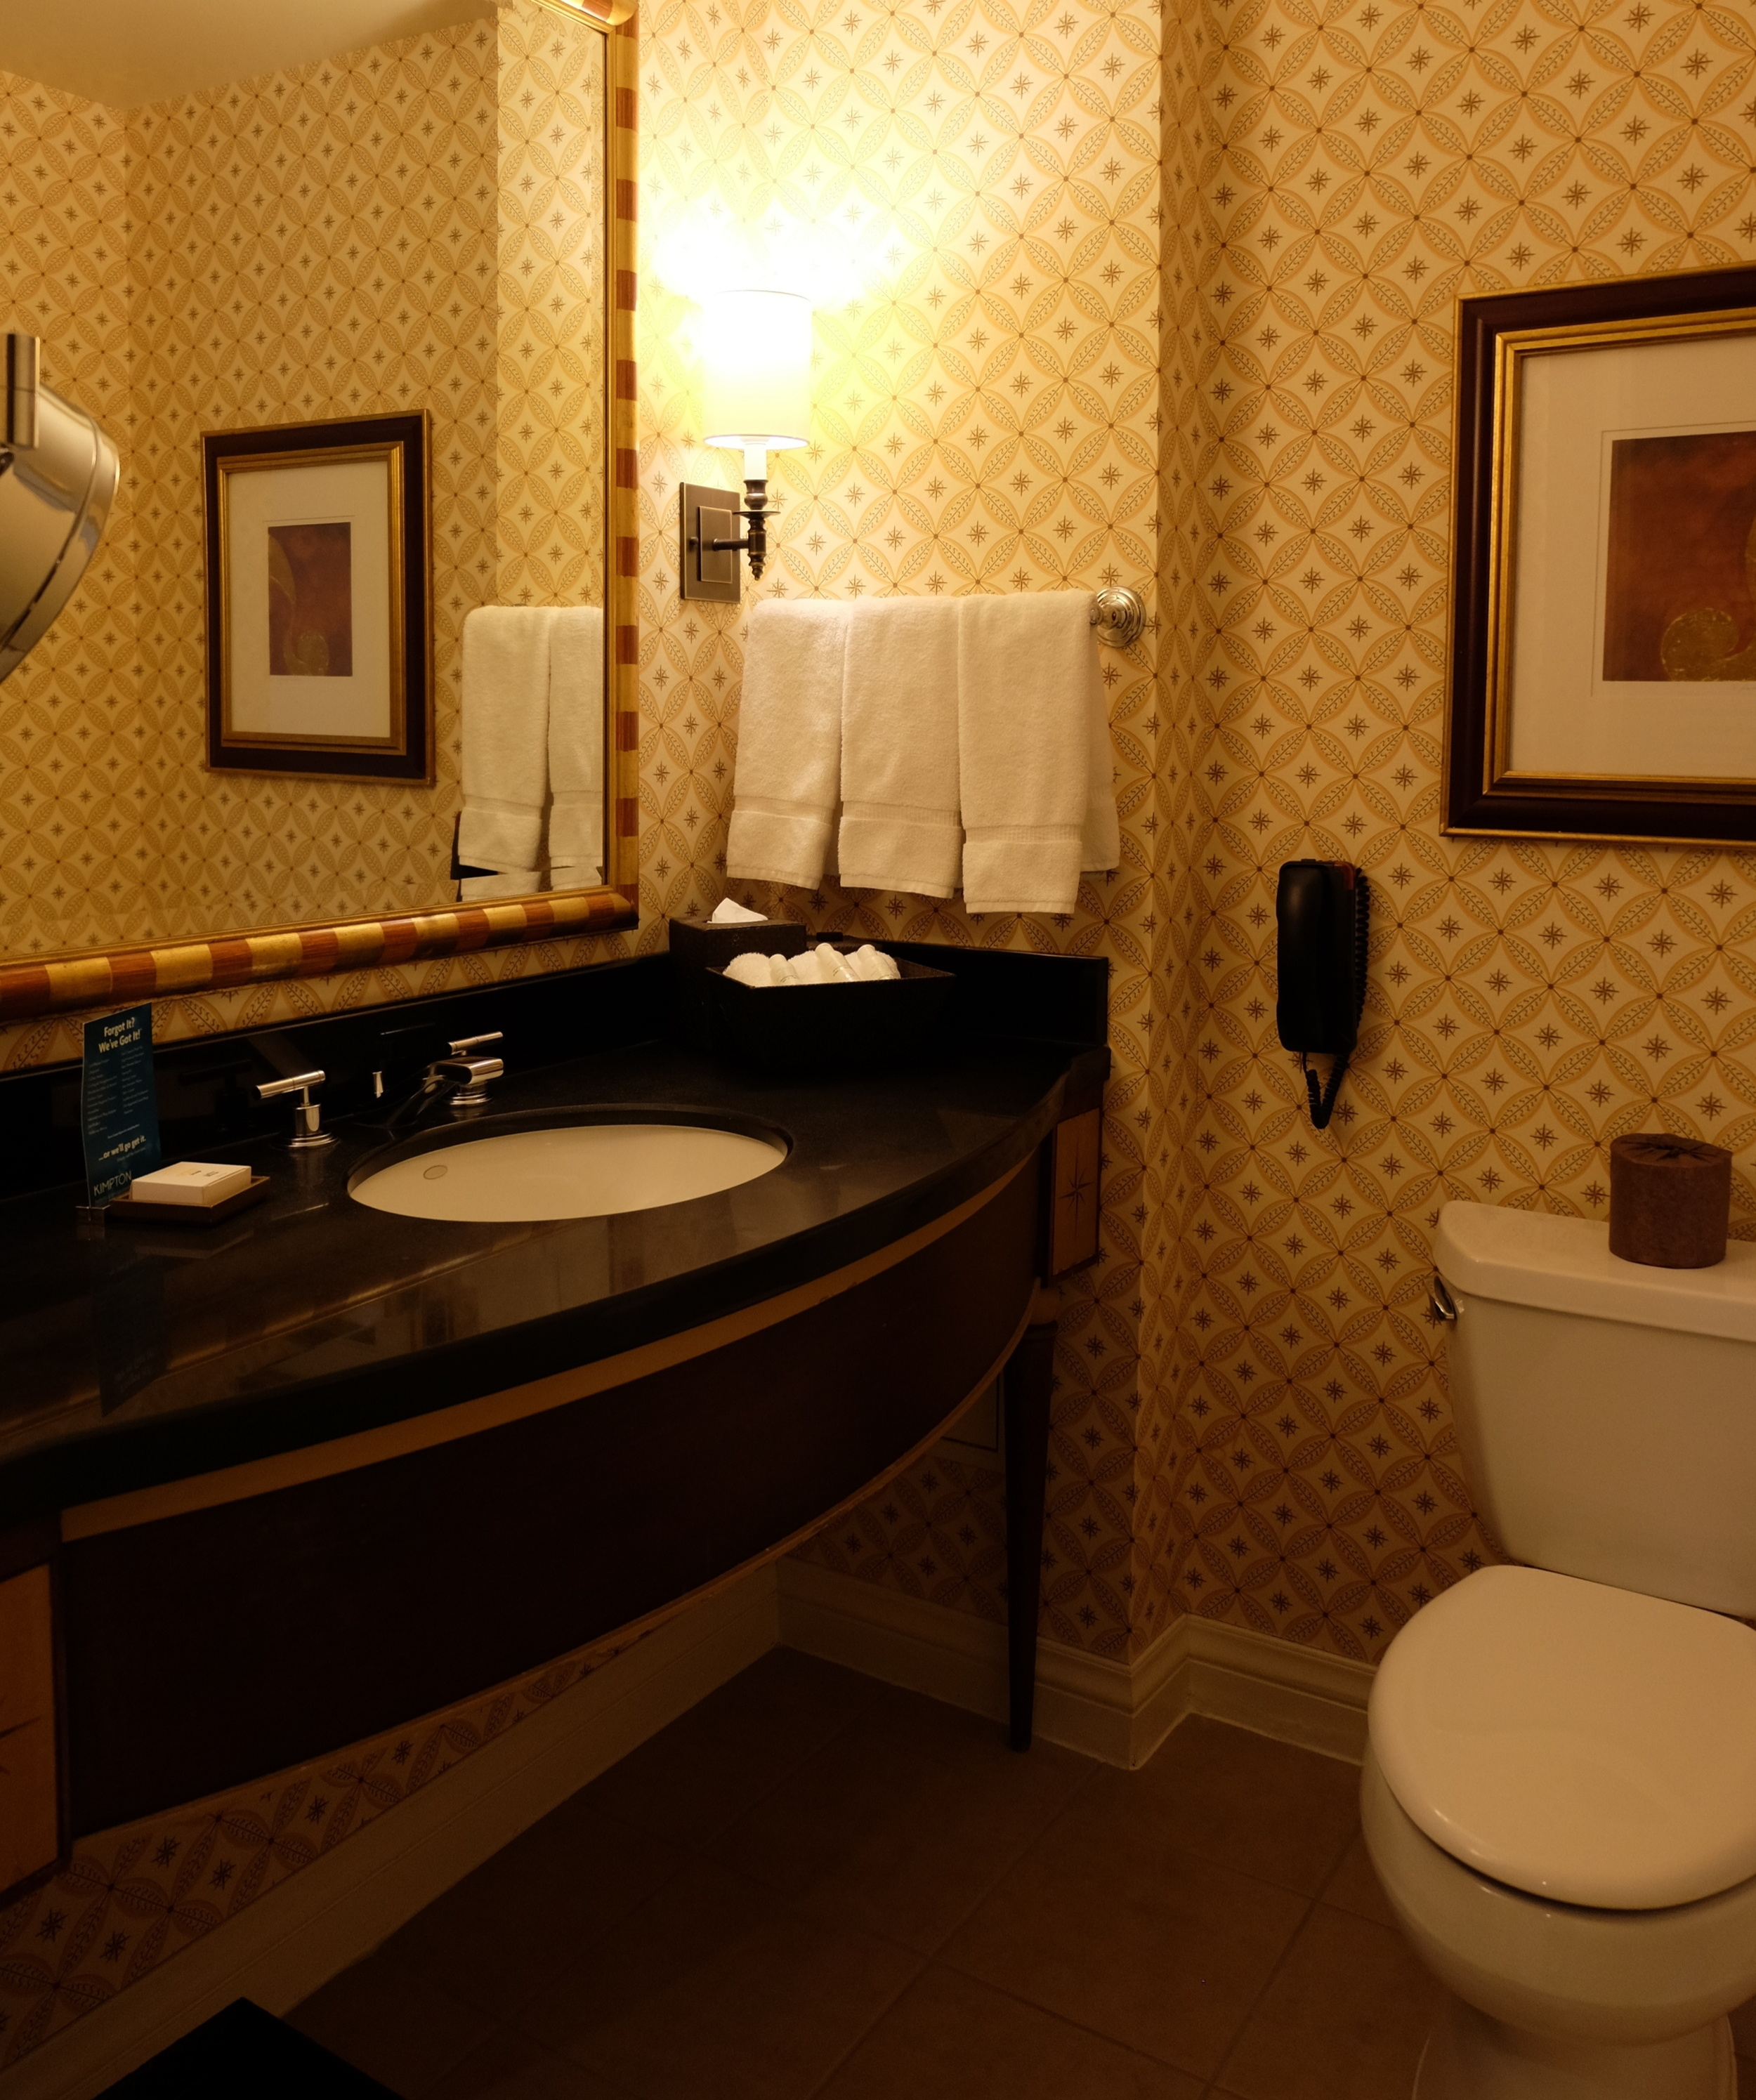 Sizable bathroom with combo shower/bathtub (not pictured). I loved their eco-friendly bath amenities.